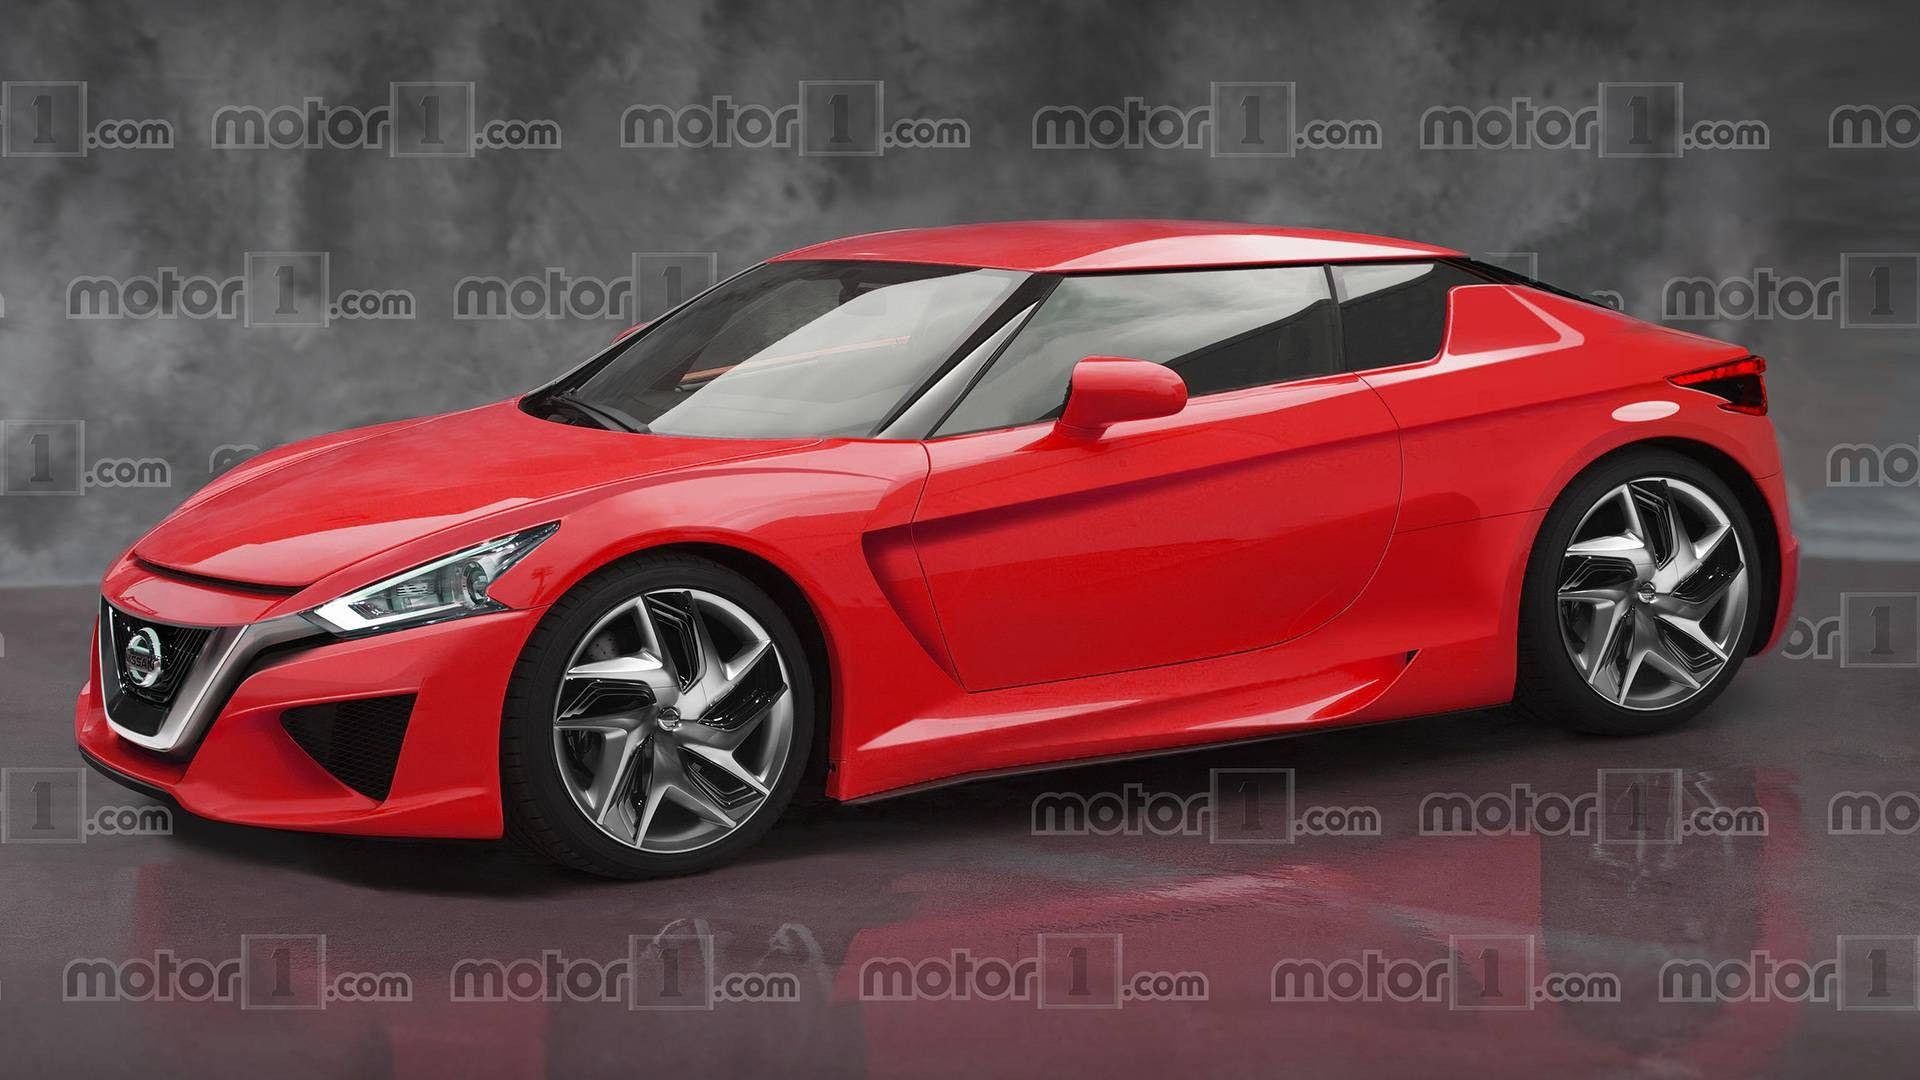 Nissan New Z 2020 Review And Release Date Check More At Https Blog Dailymaza Me Nissan New Z 2020 Review And Release Date Di 2020